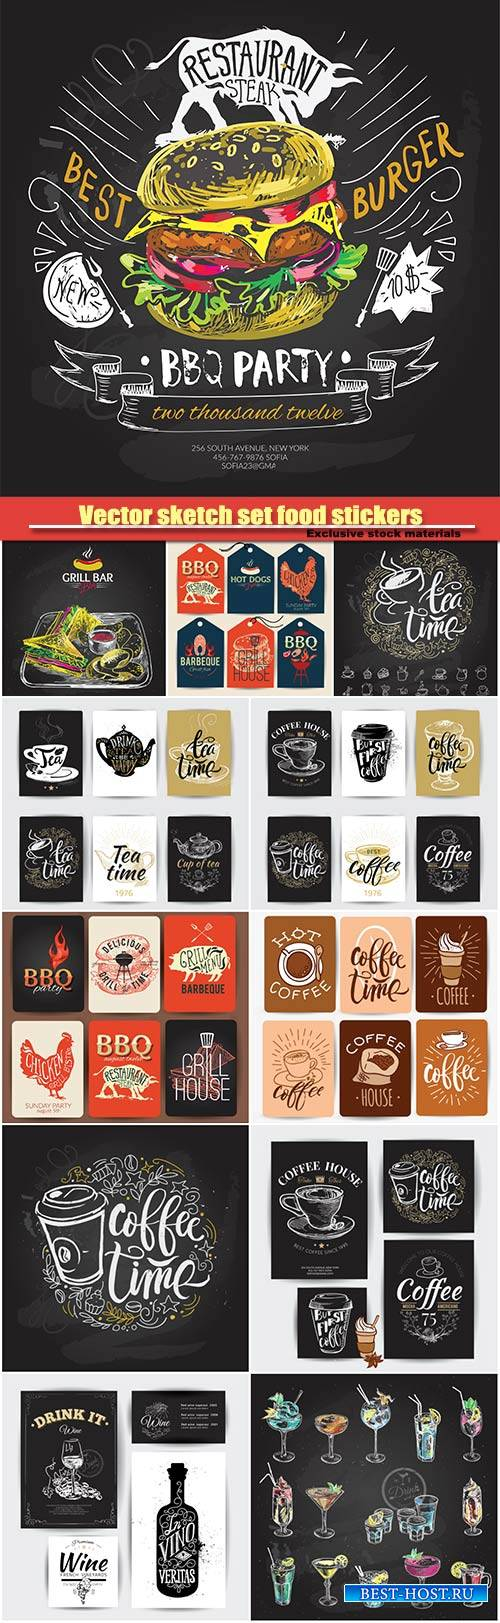 Hand drawn vector sketch set food stickers, alcoholic cocktail, coffee, bar ...